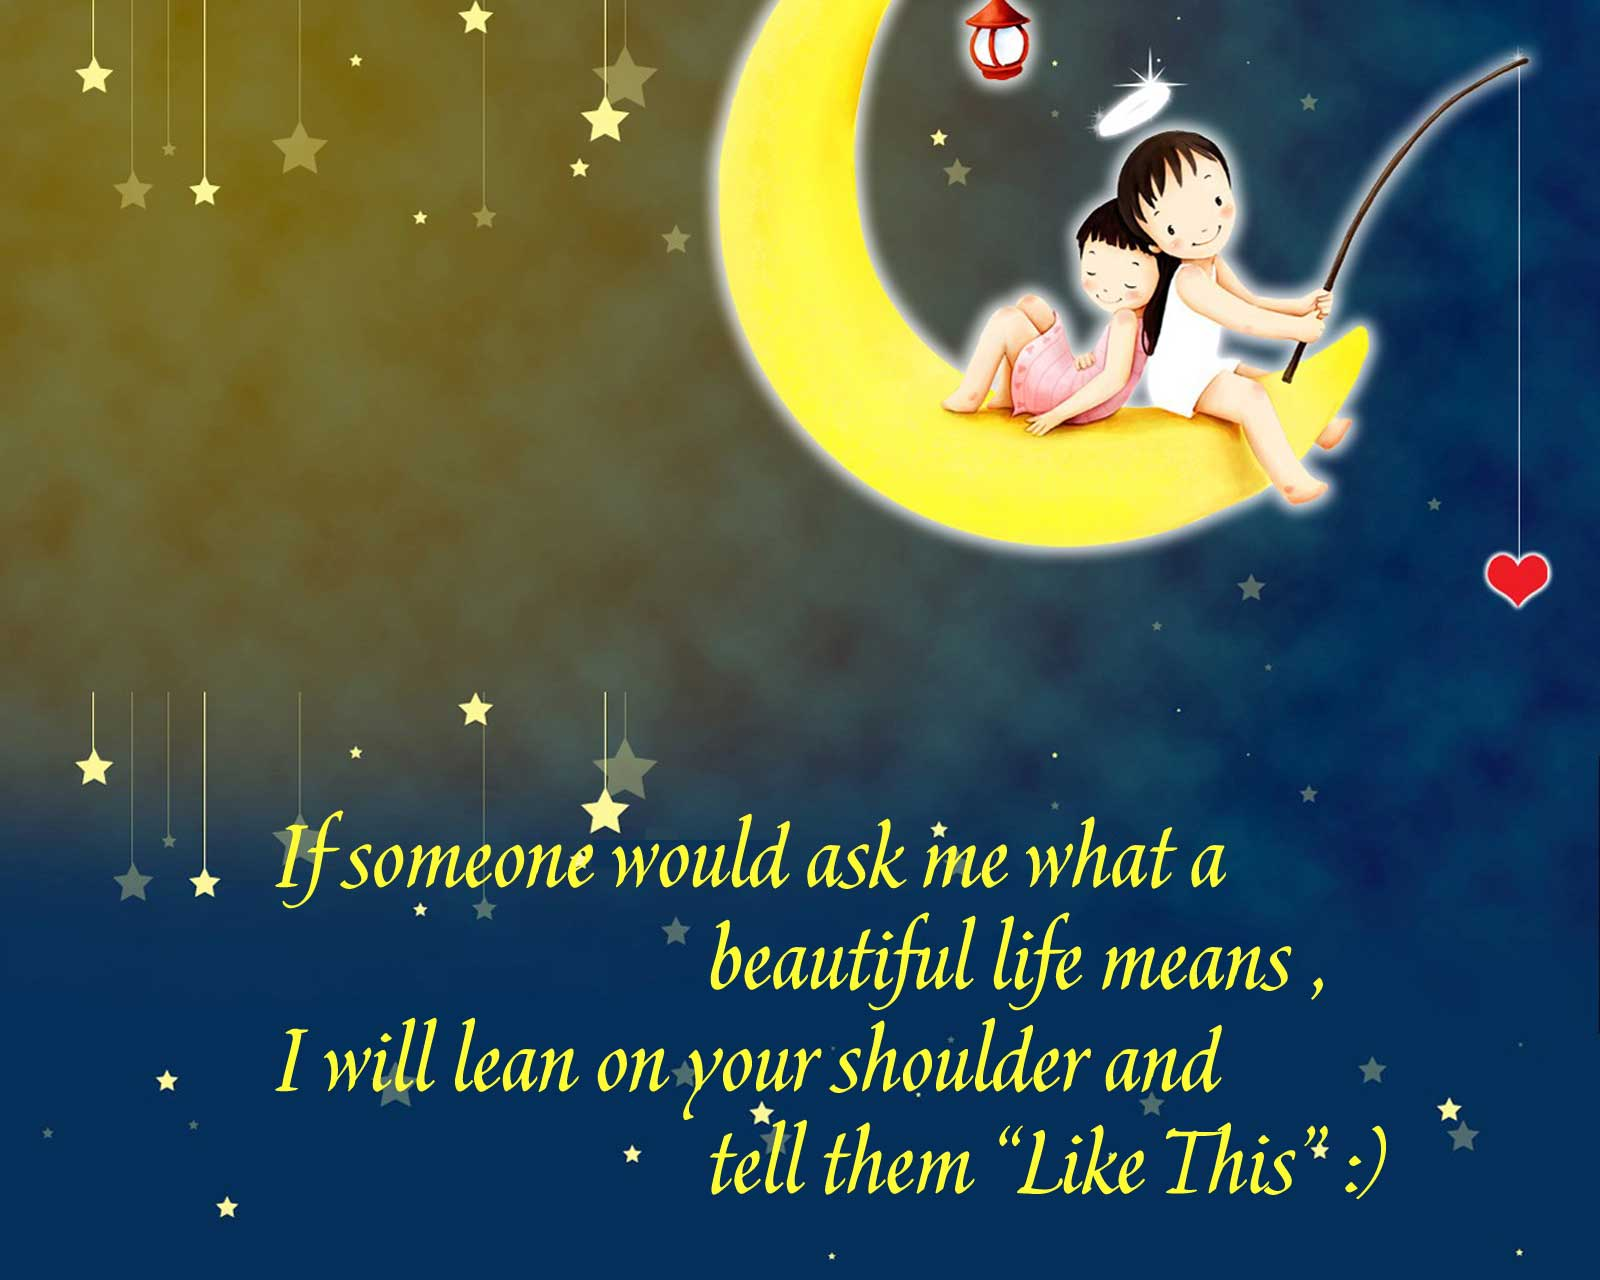 cutecartoonlifequoteswallpaperfreedownloadhdfor